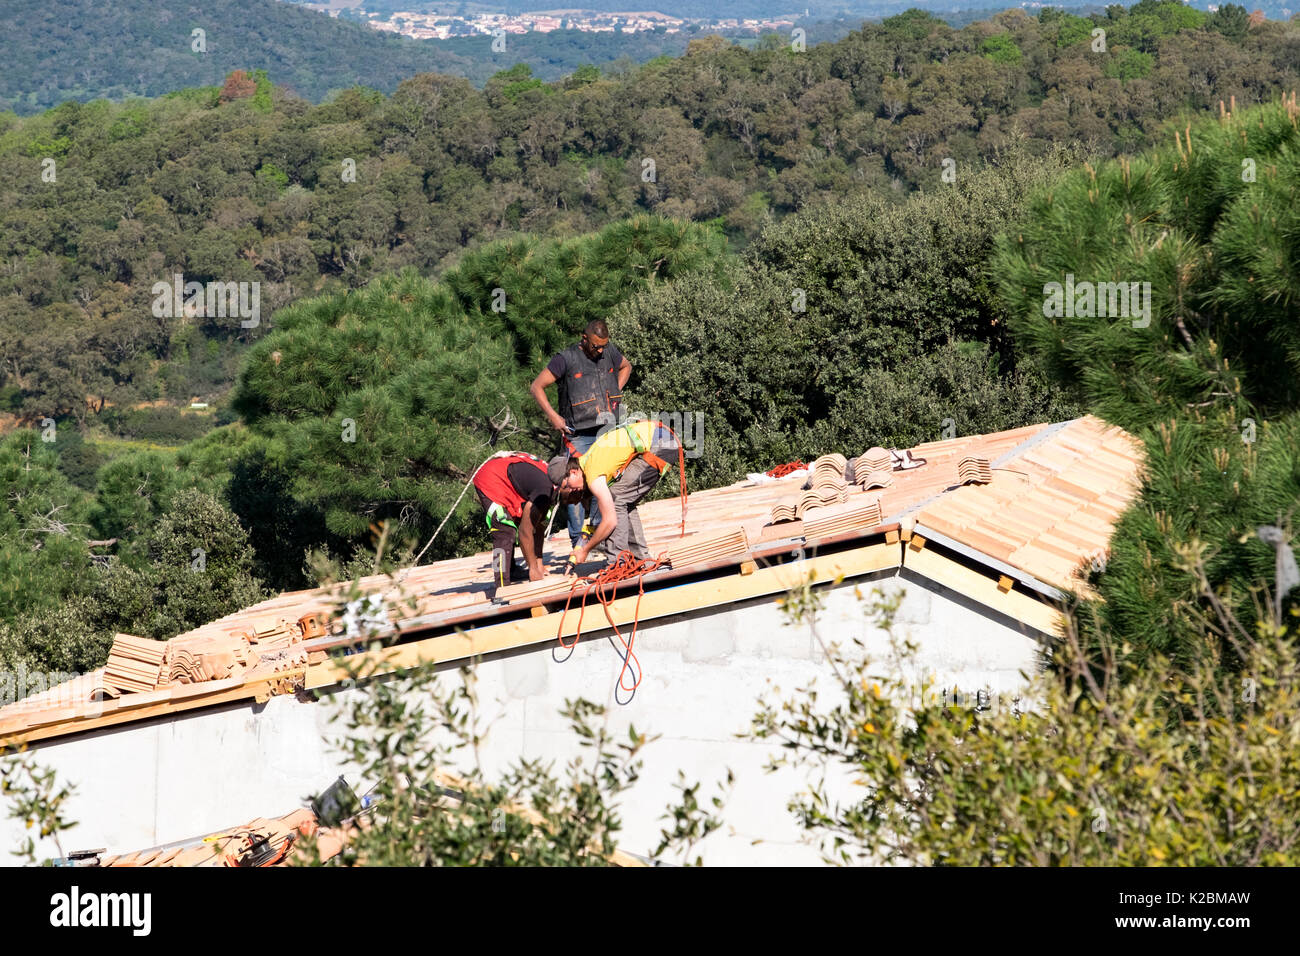 Roofers at work installing tiles on a new home in Provence, France - Stock Image